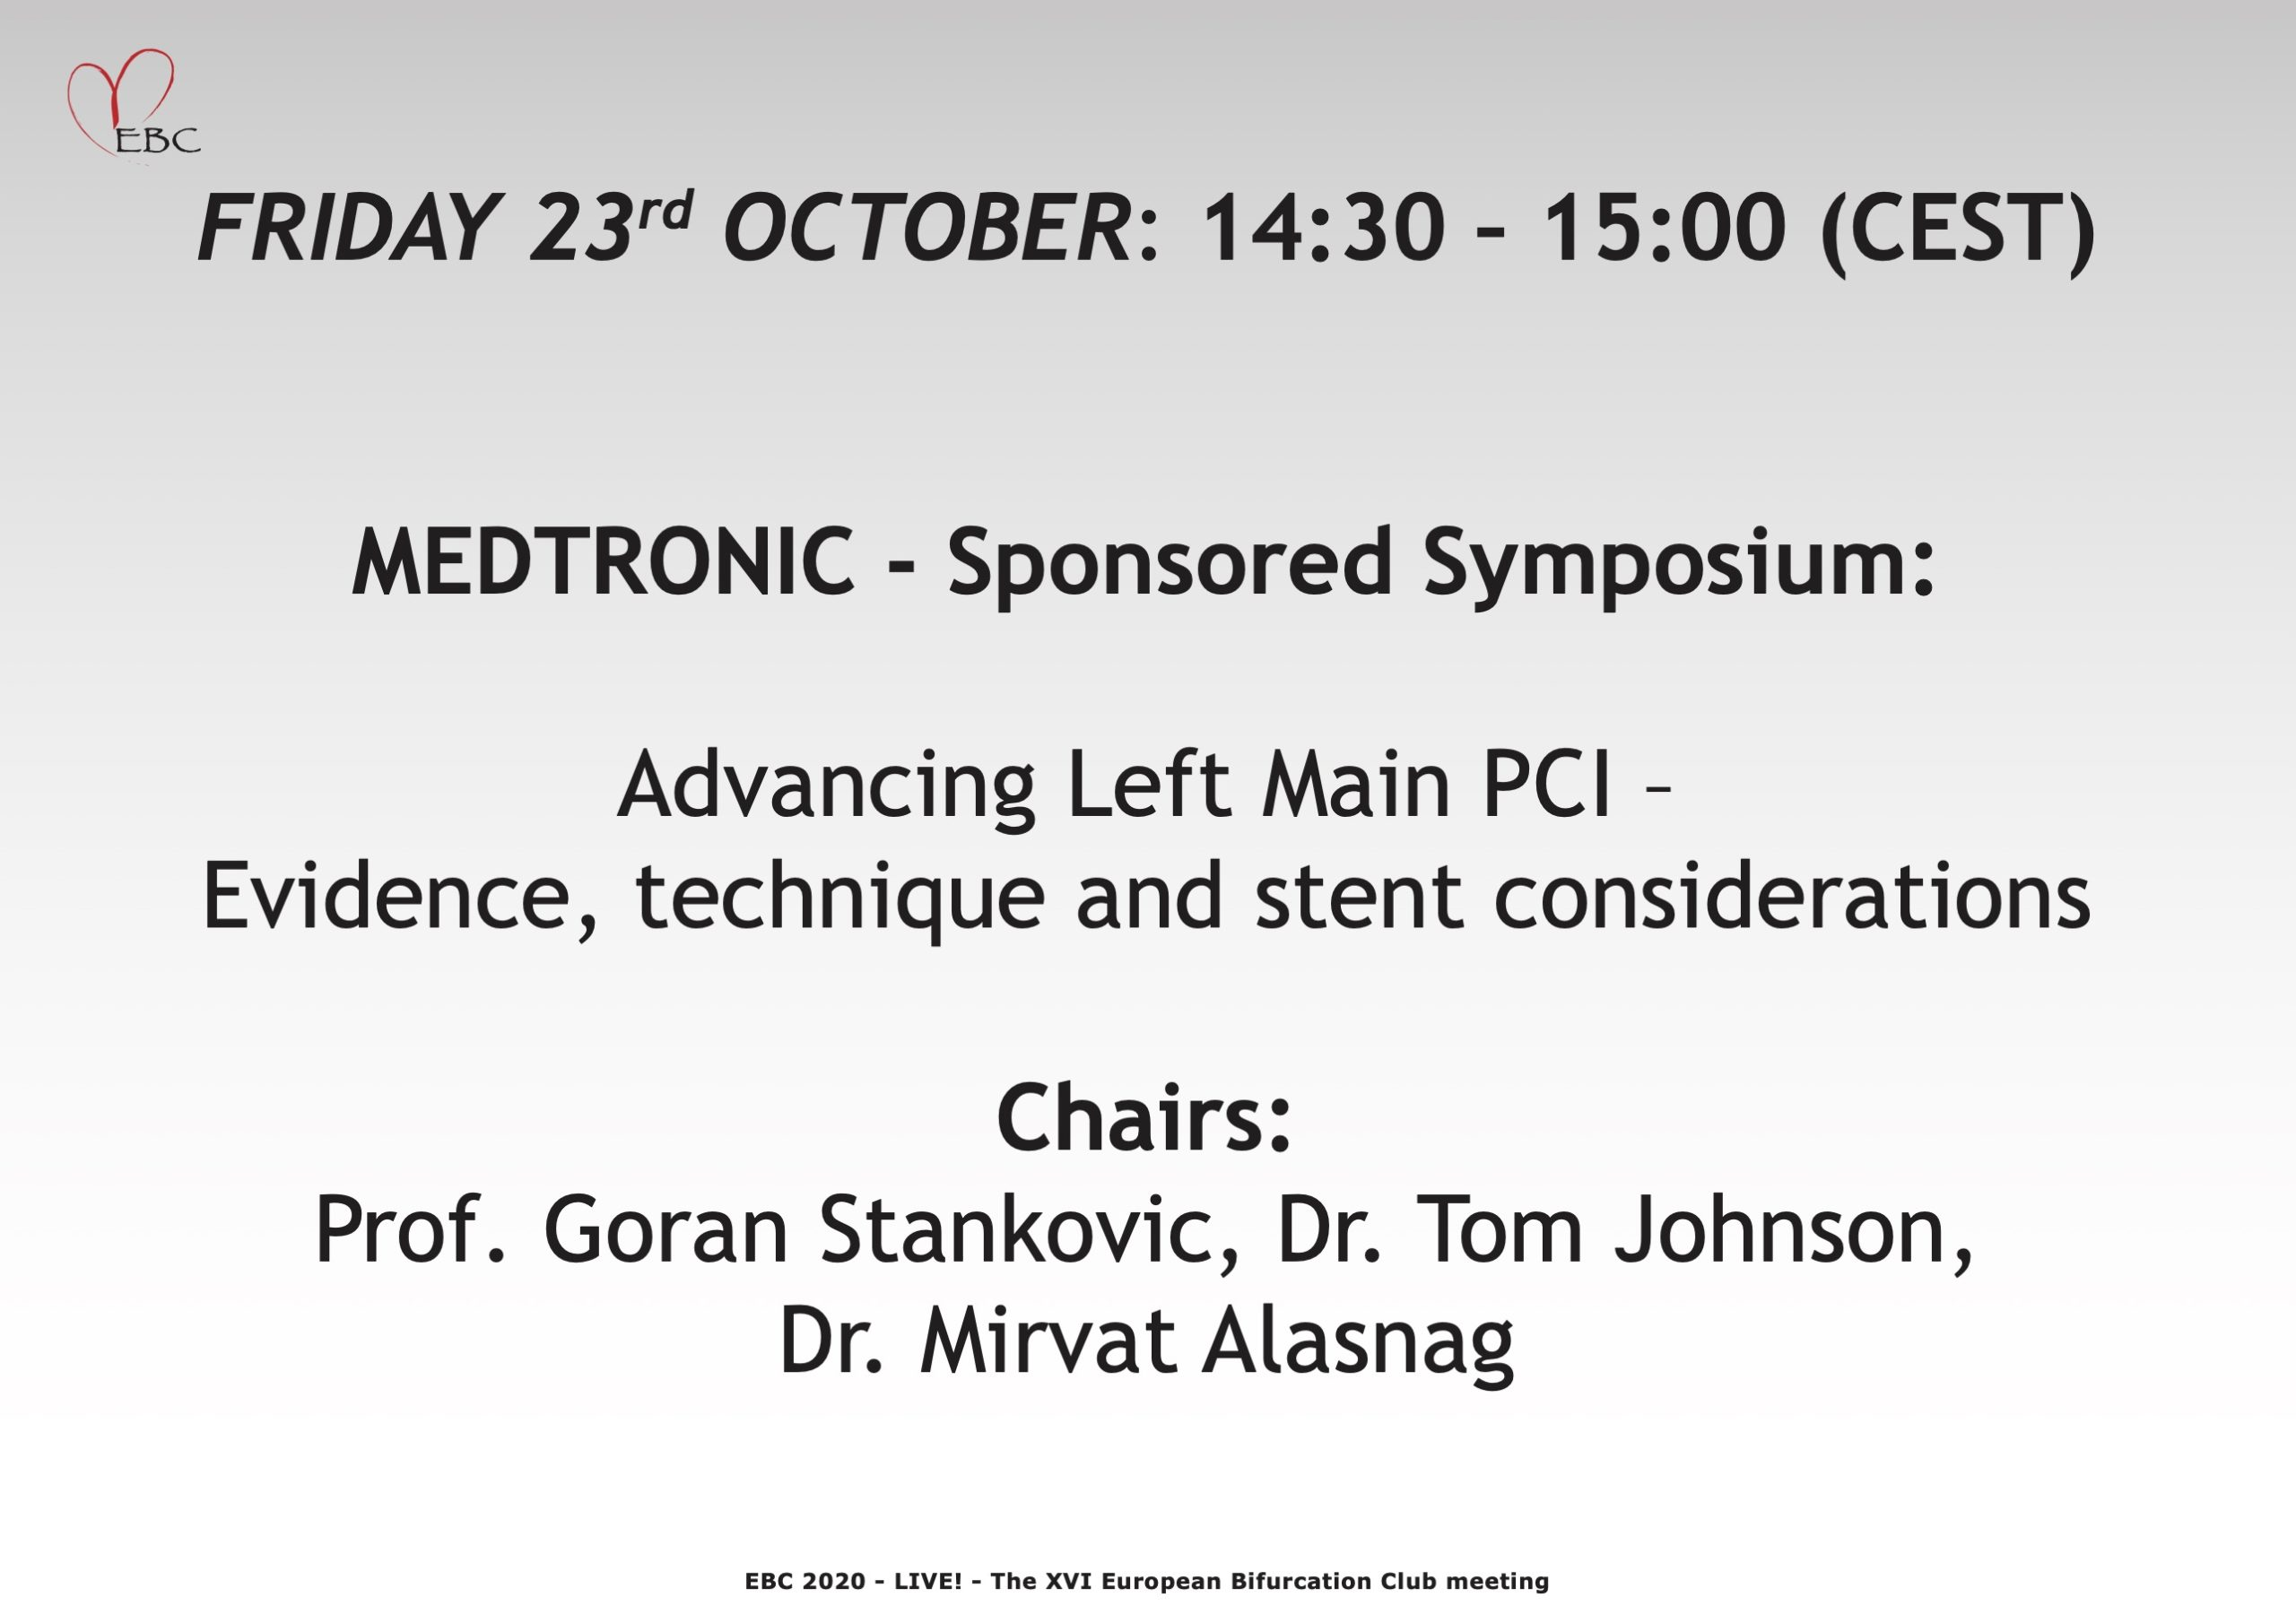 MEDTRONIC – Advancing Left Main PCI – Evidence, technique, and stent considerations